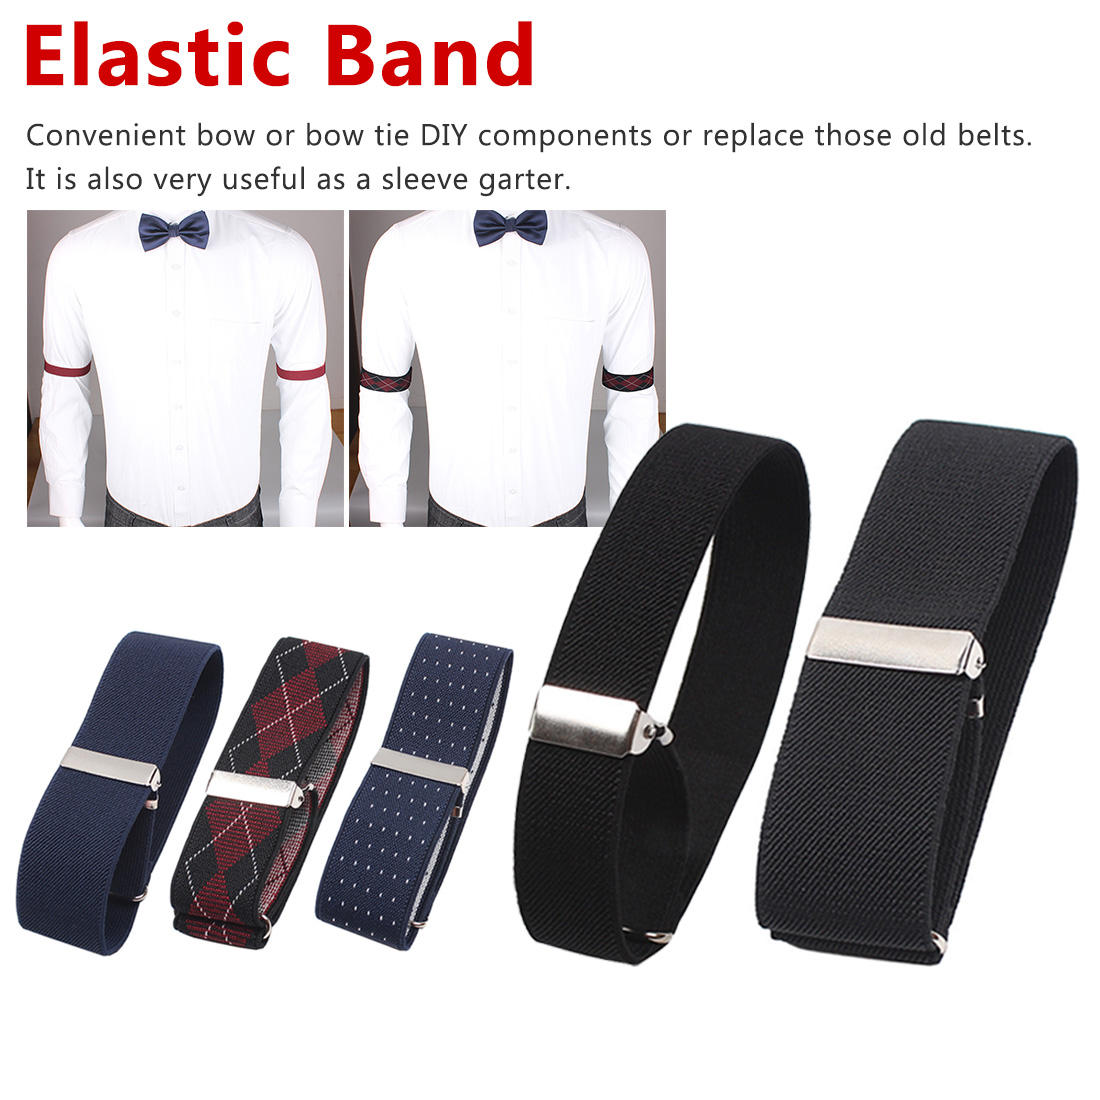 Men's Sleeve Garters Holders Arm Gentleman Bands Sleeve Shirt Groom Elastic Garter Metal Bracelet